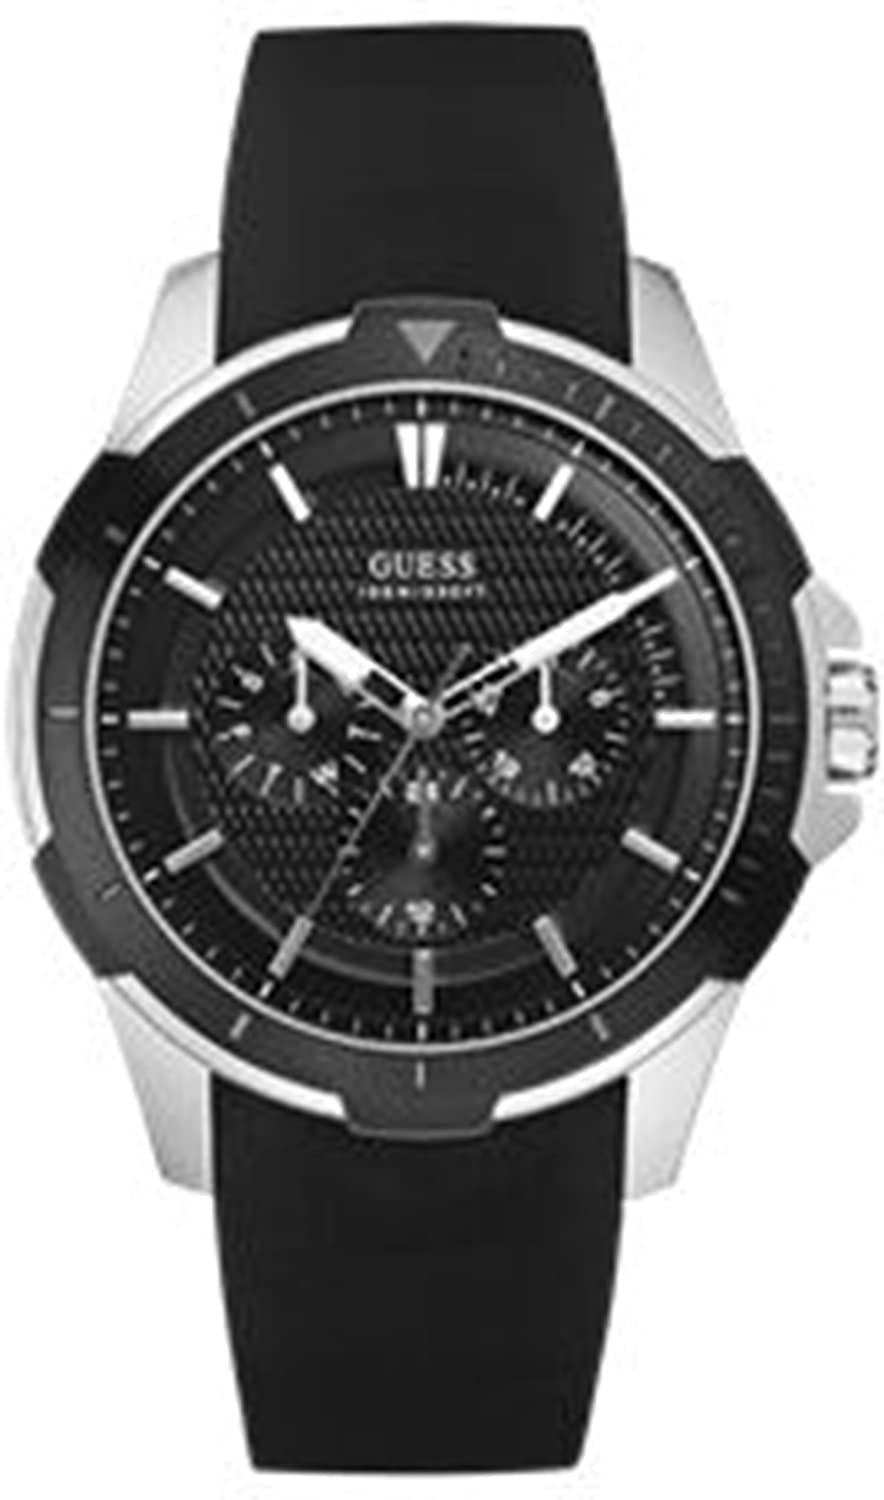 Amazon.com: Guess Mens CALIPER W85079G5 Black Resin Quartz Watch with Black Dial: Guess: Watches